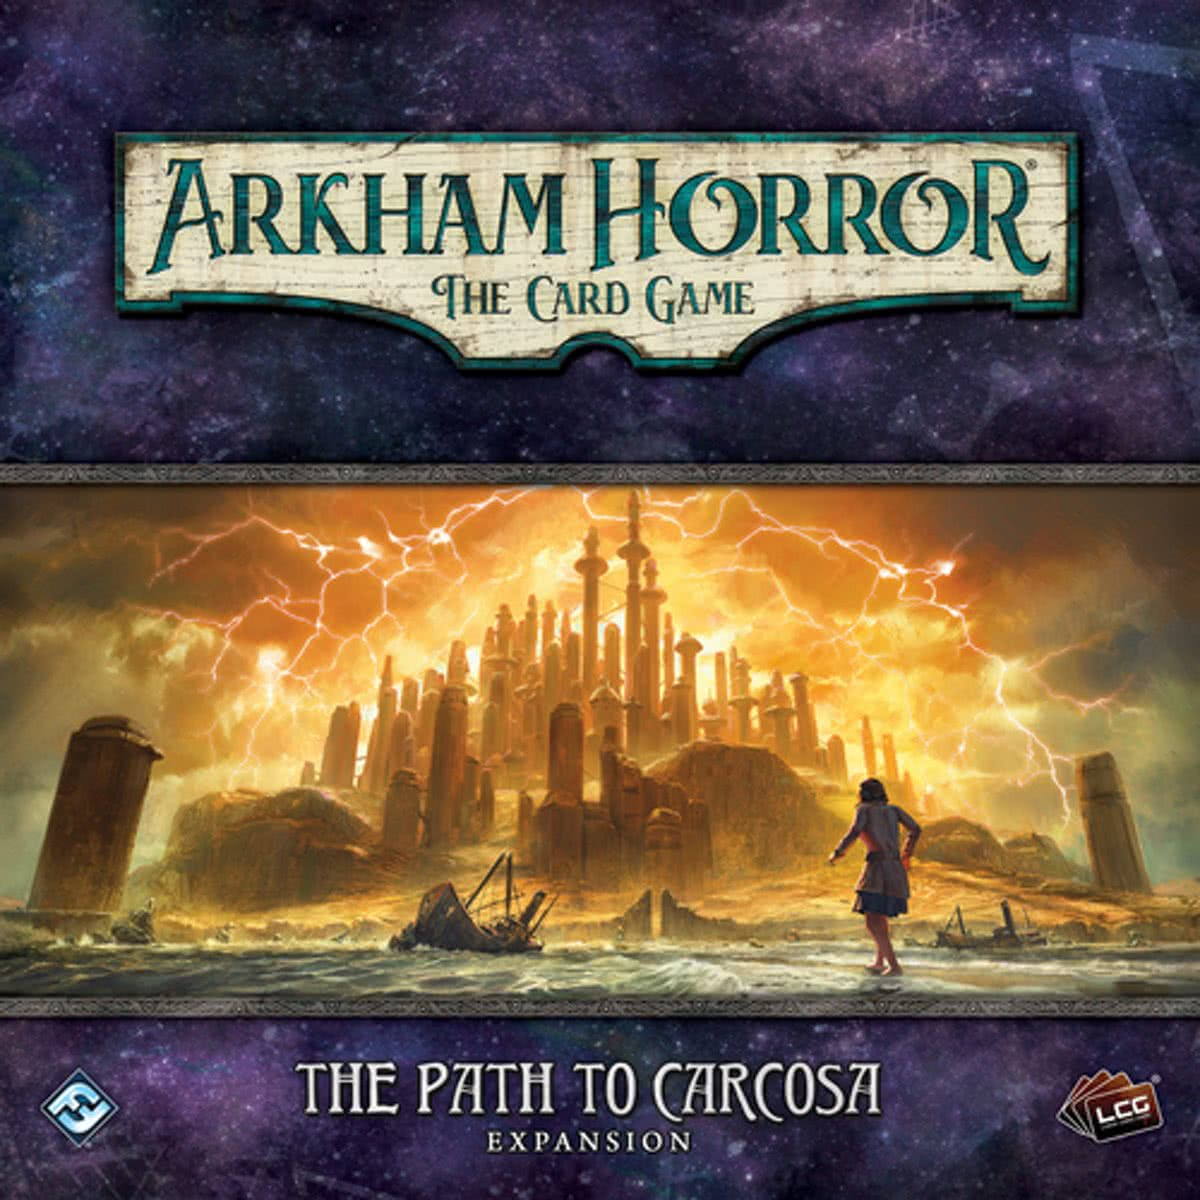 Arkham Horror Card Game: The Path to Carcosa